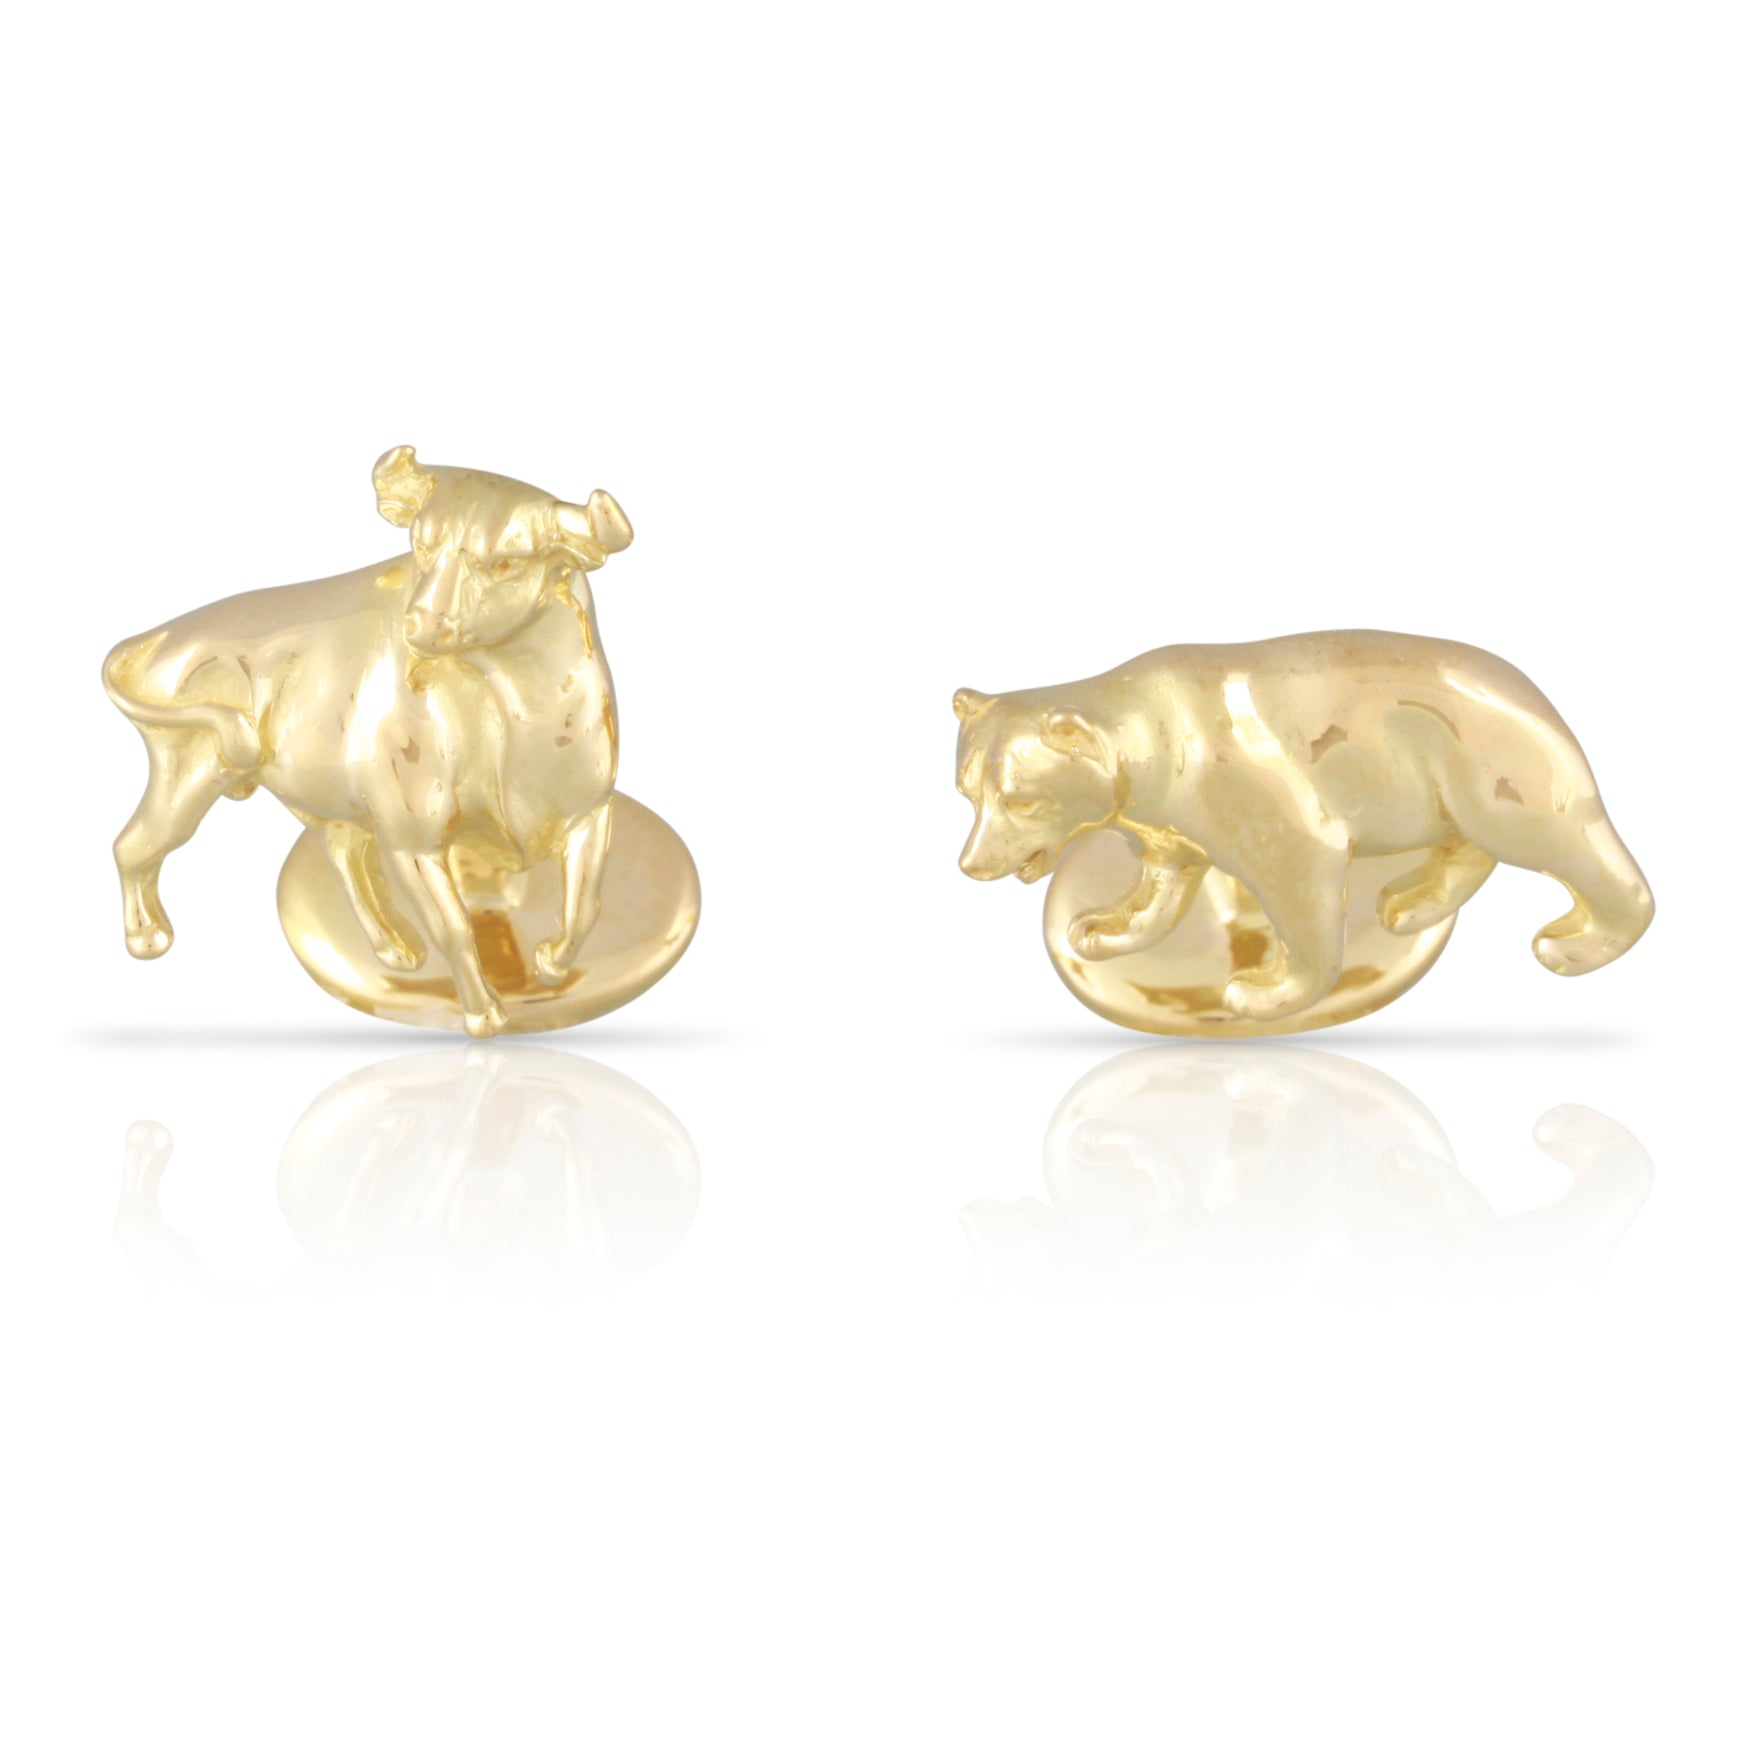 c5e13afea Tiffany & Co. Gold Bull and Bear Cufflinks | The Finn – Atique